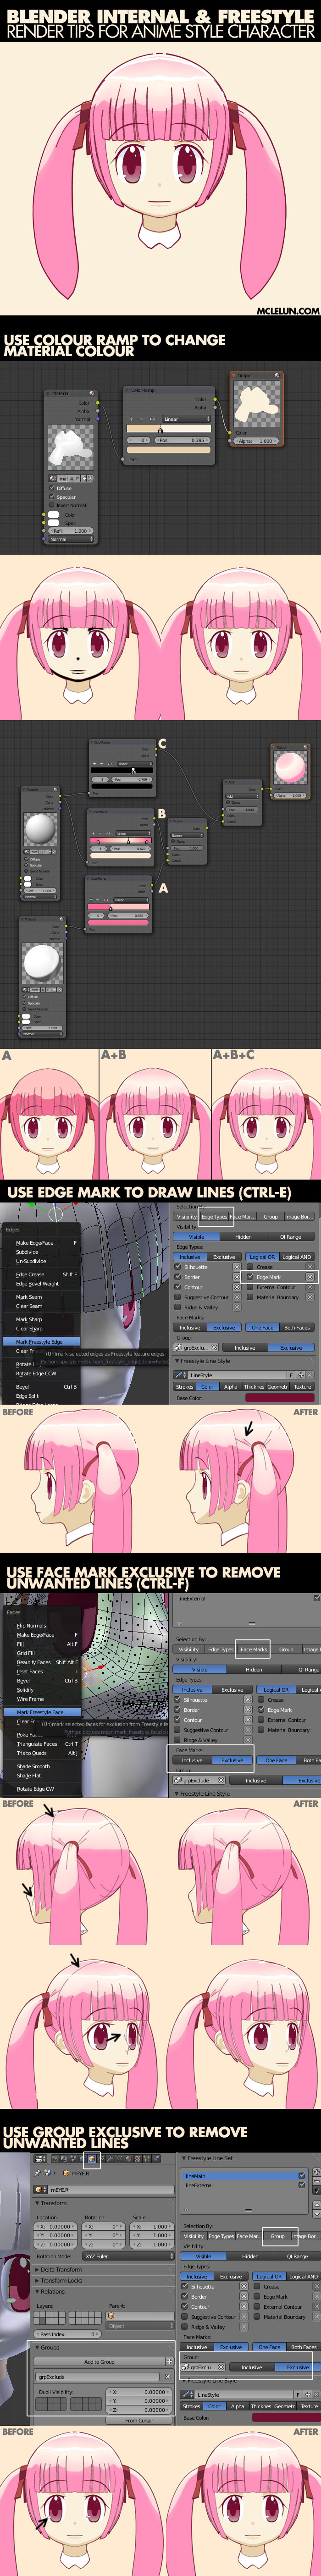 blender3d freestyle anime character tips